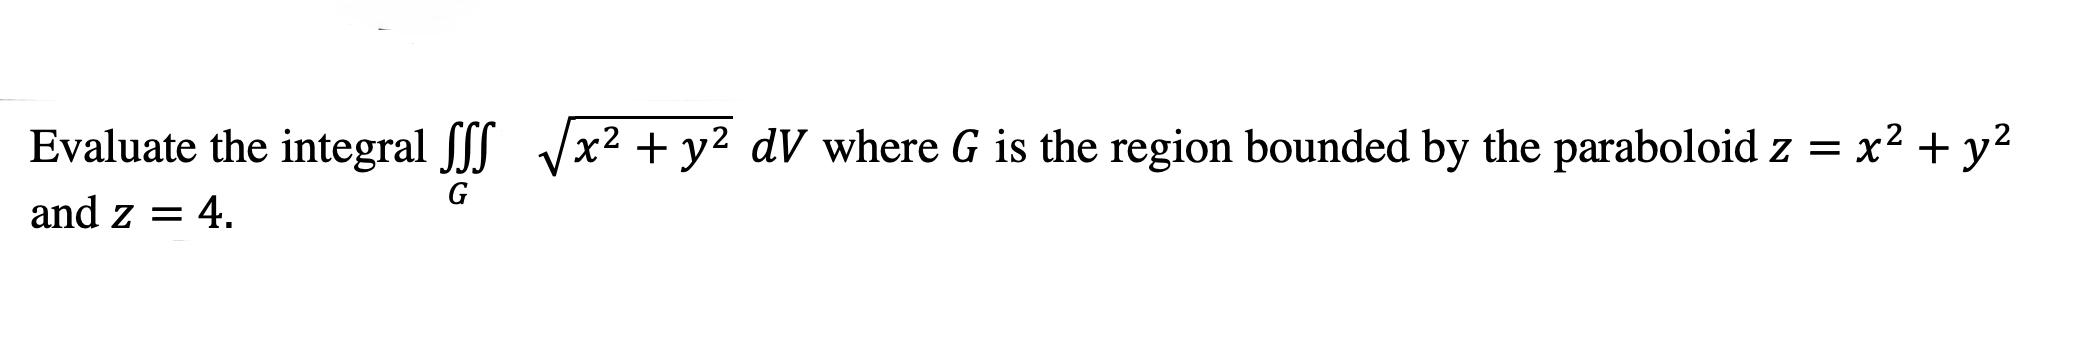 Evaluate the integral SSS Vx2 + y2 dV where G is the region bounded by the paraboloid z = x2 + y2 and z = 4. G